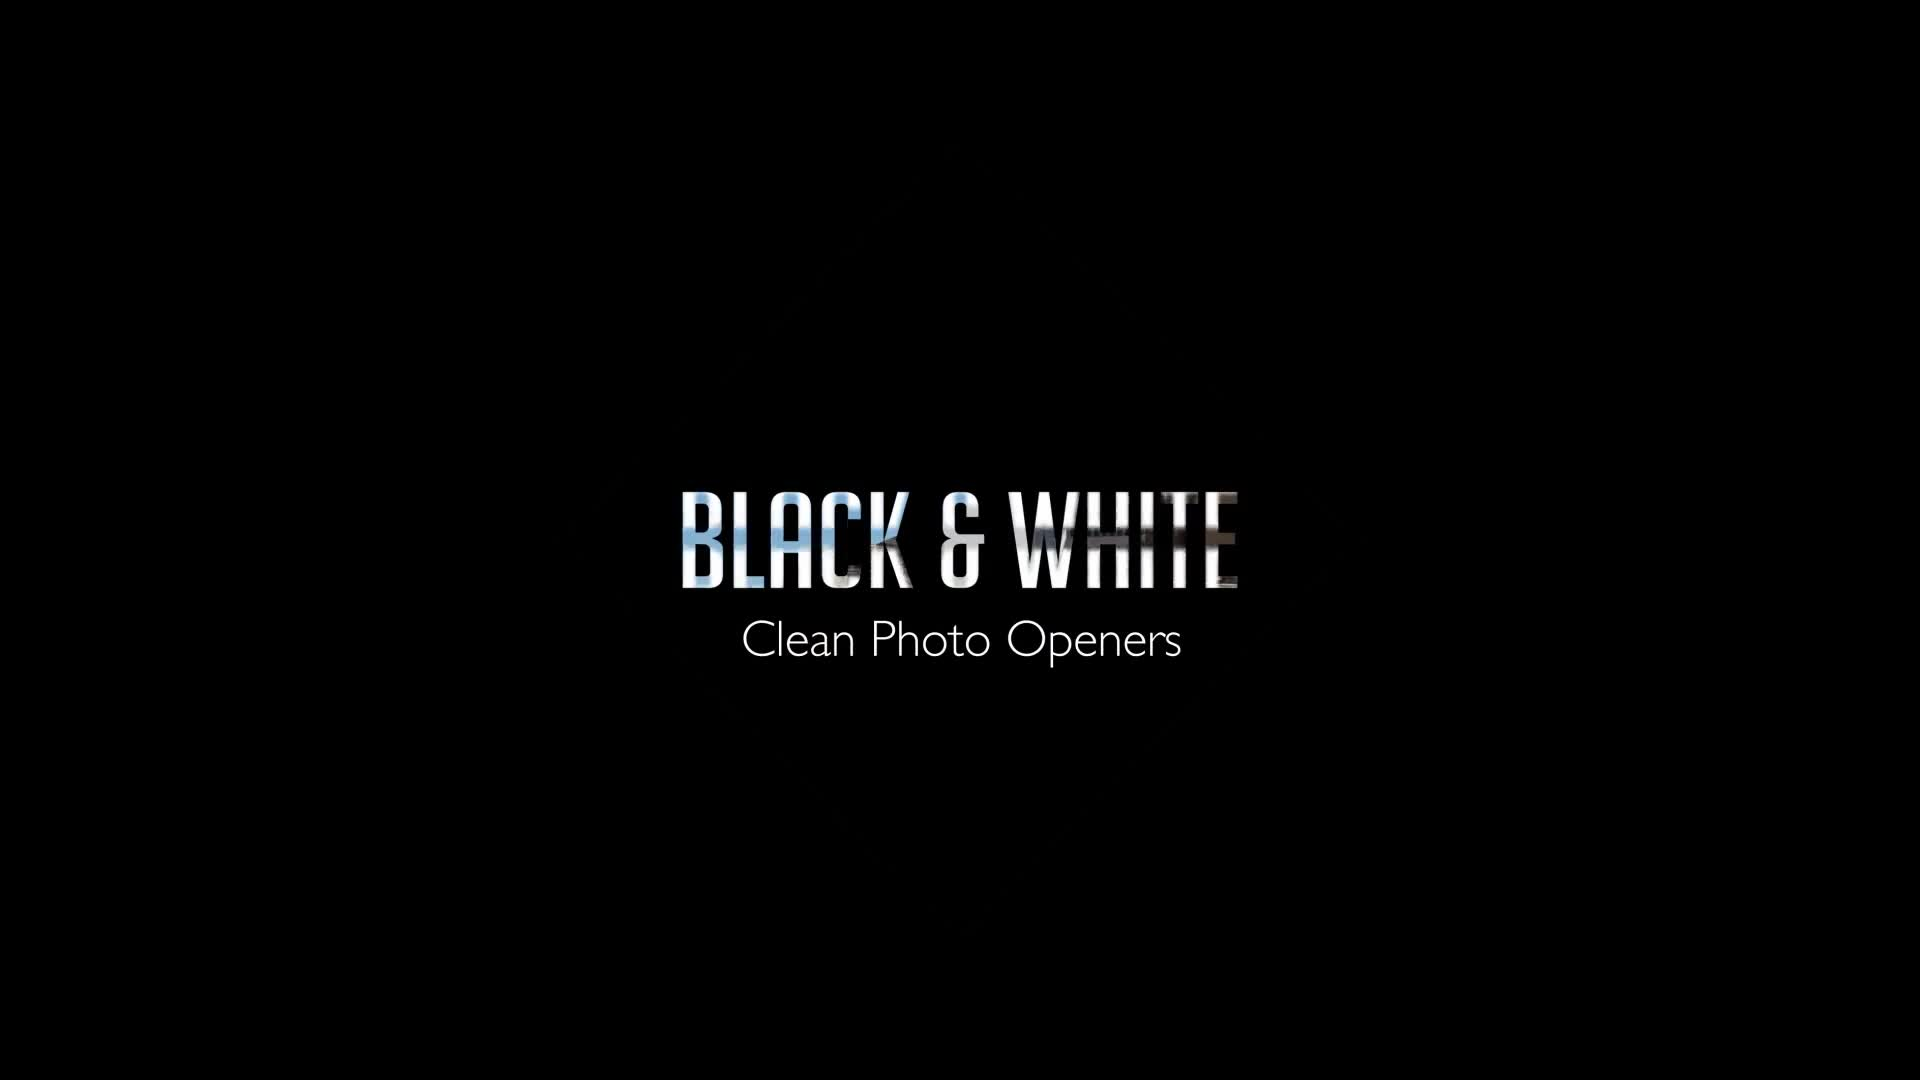 Black & White Clean Photo Openers - Download Videohive 11909529